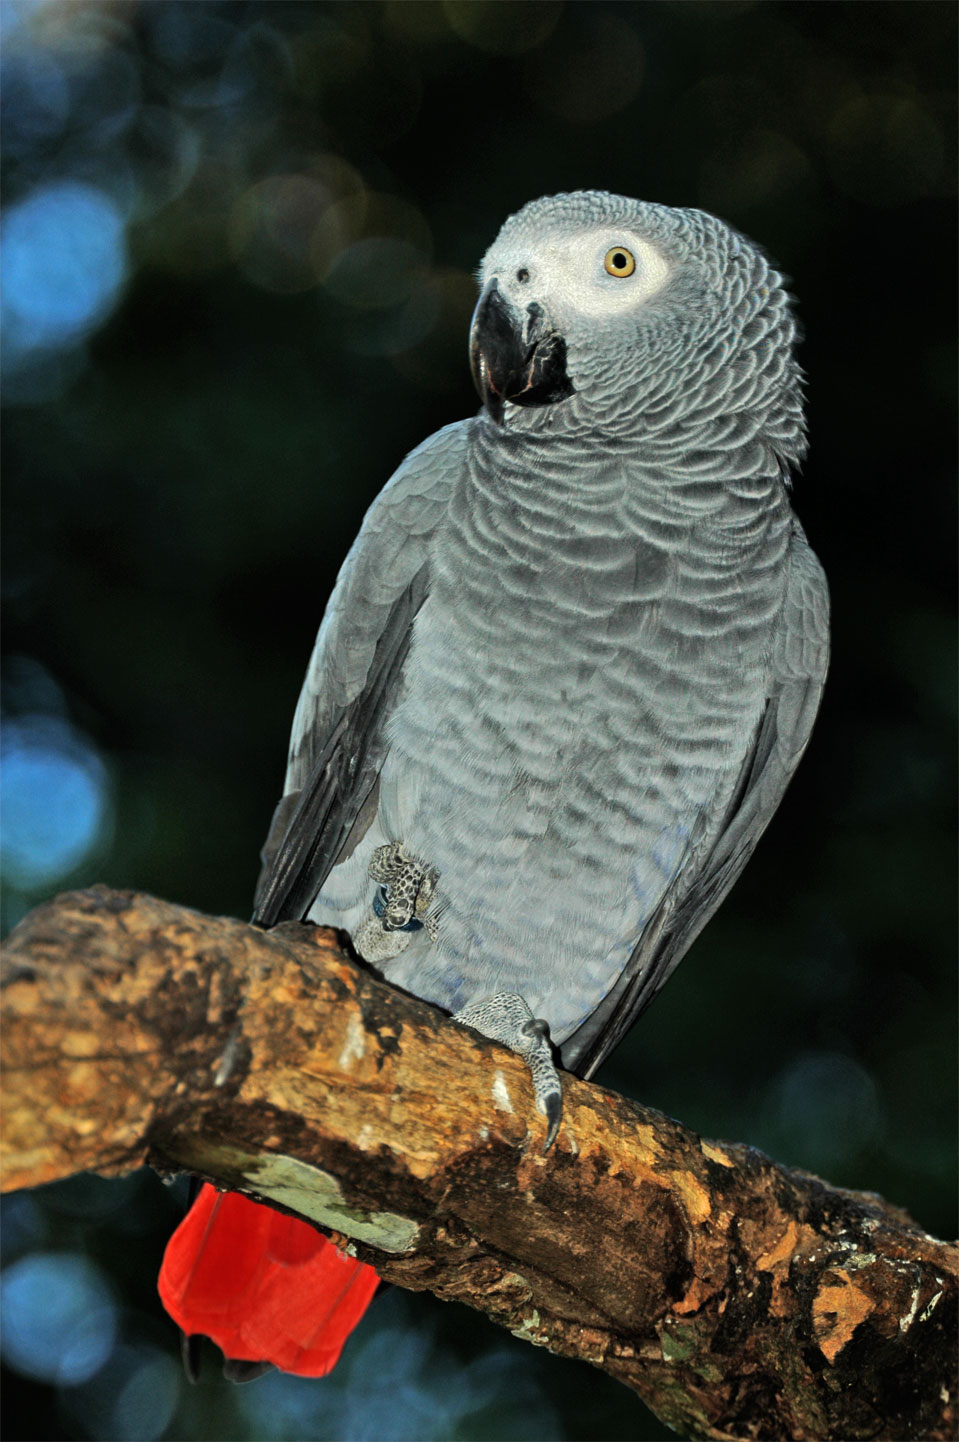 A African Grey Parrot (Psittacus erithacus).